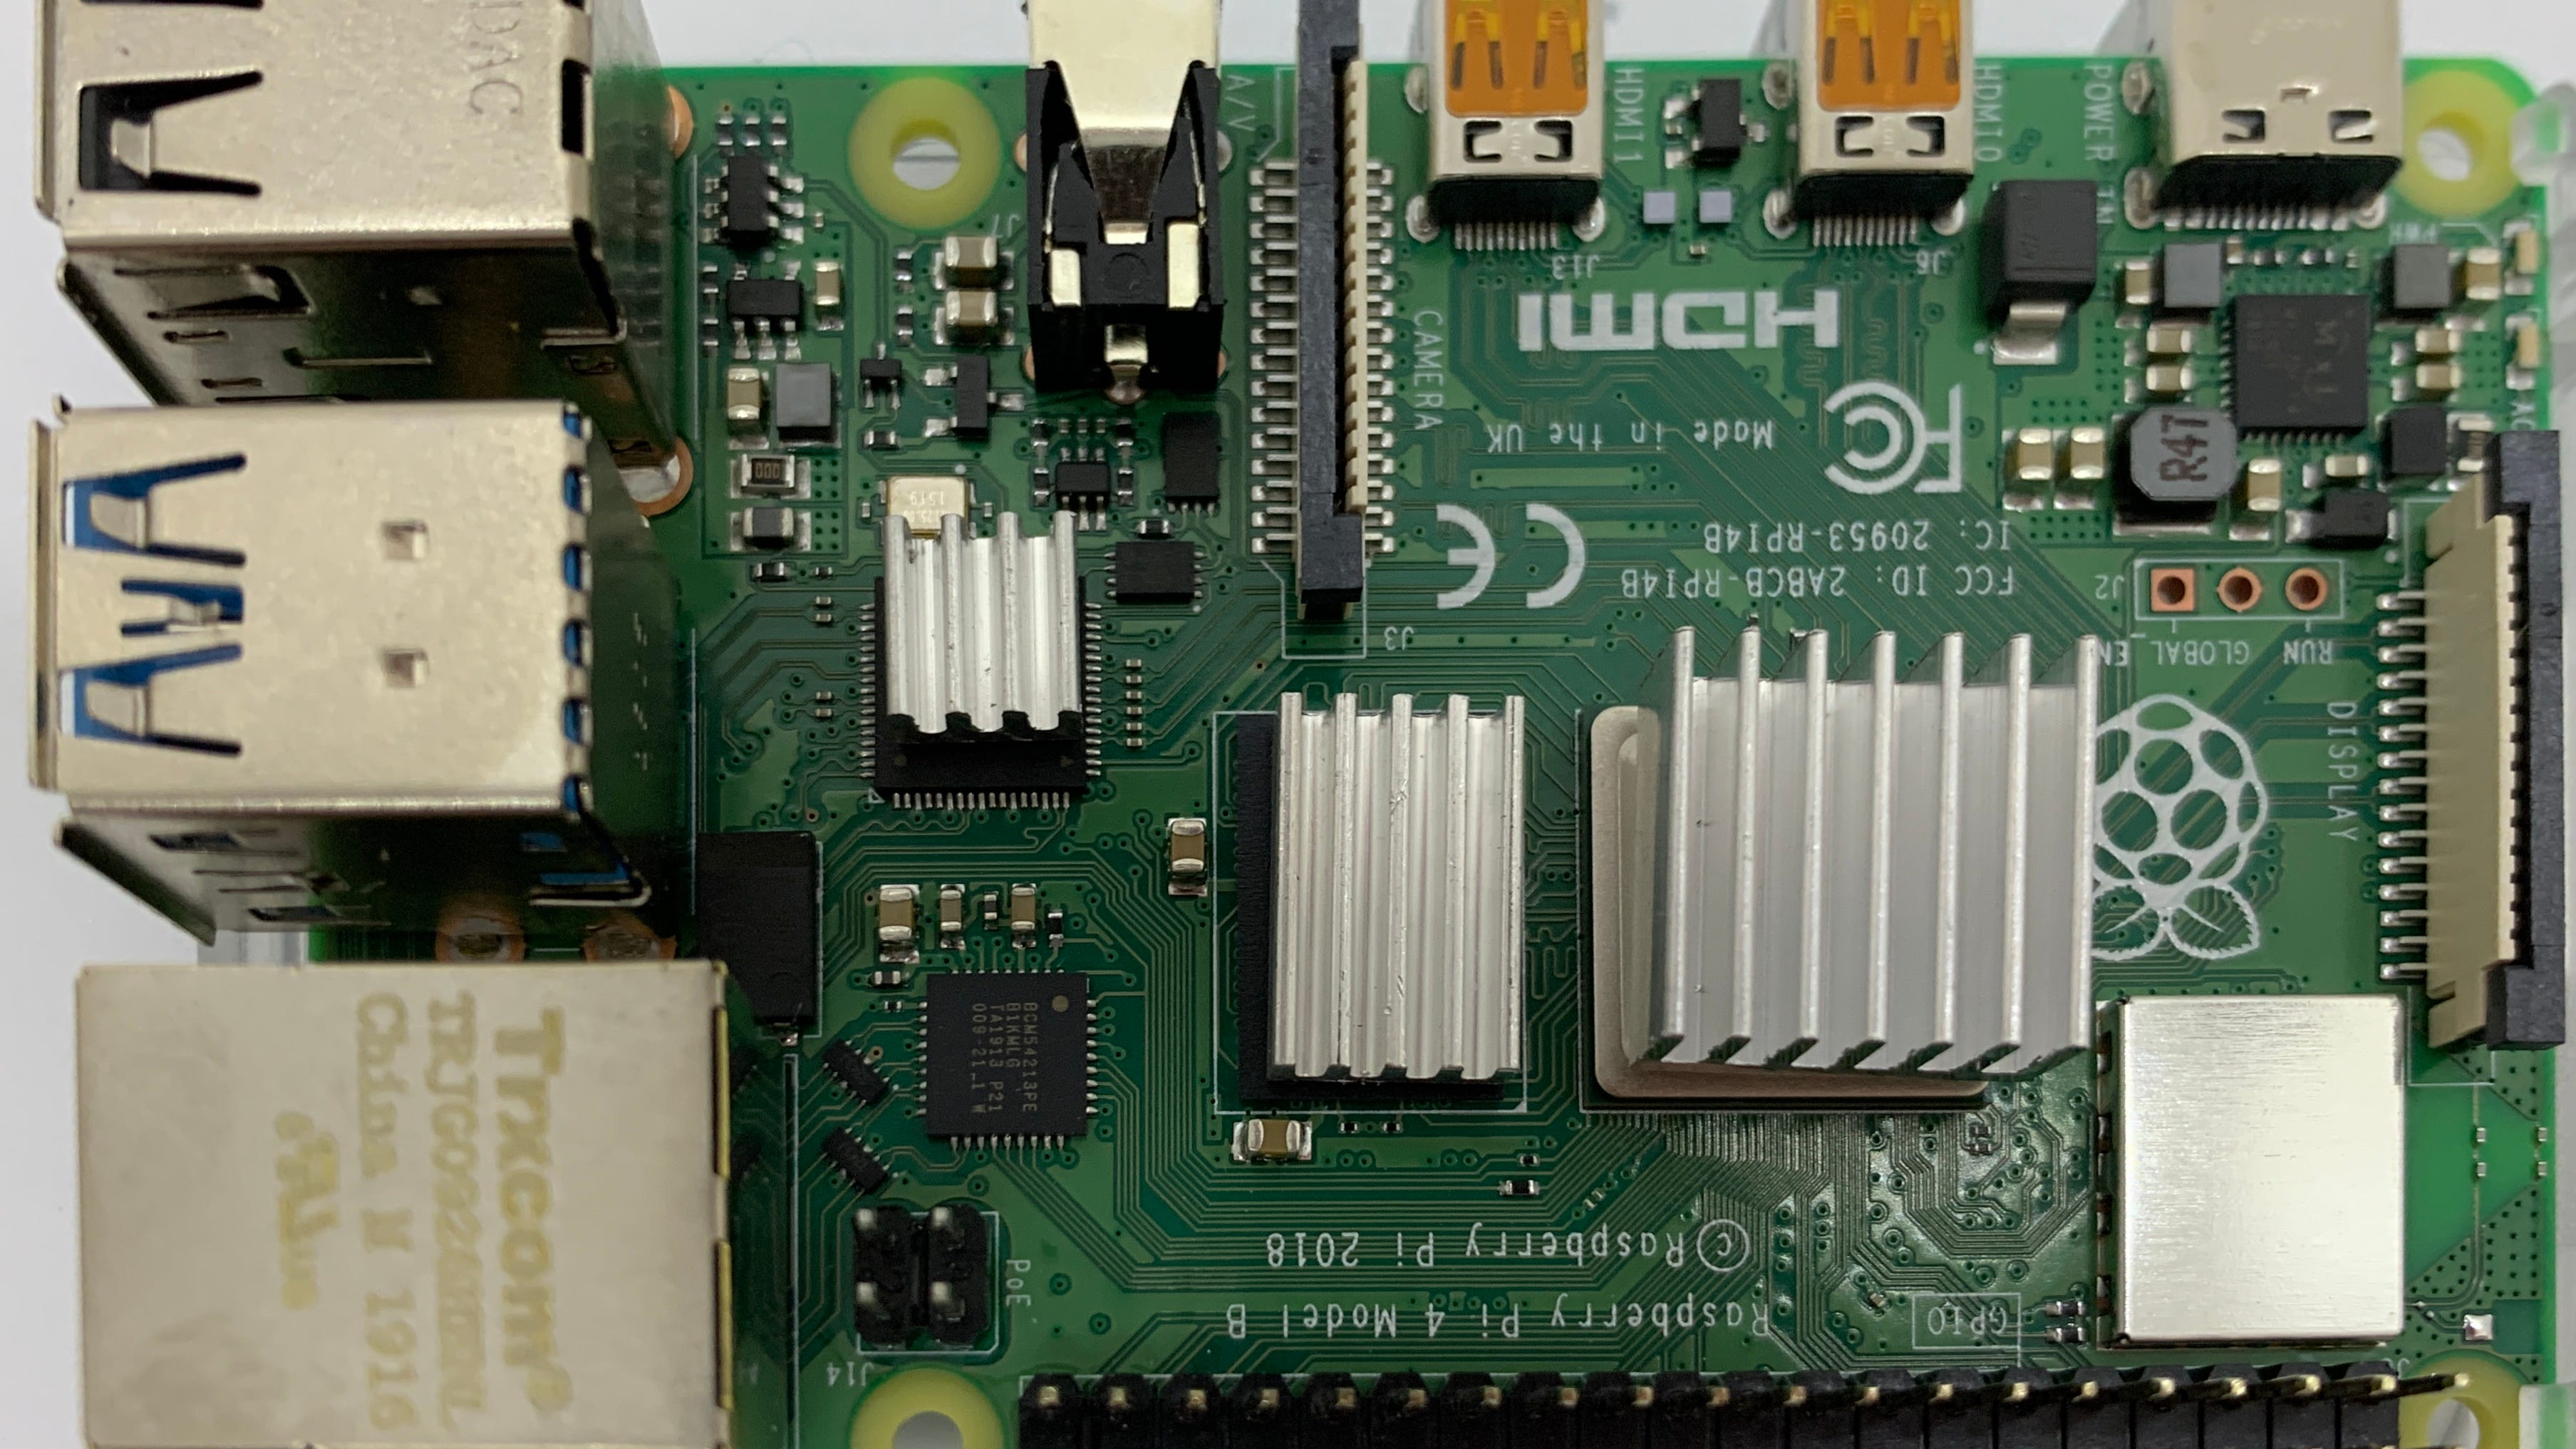 The Raspberry Pi board with the heat sinks installed.